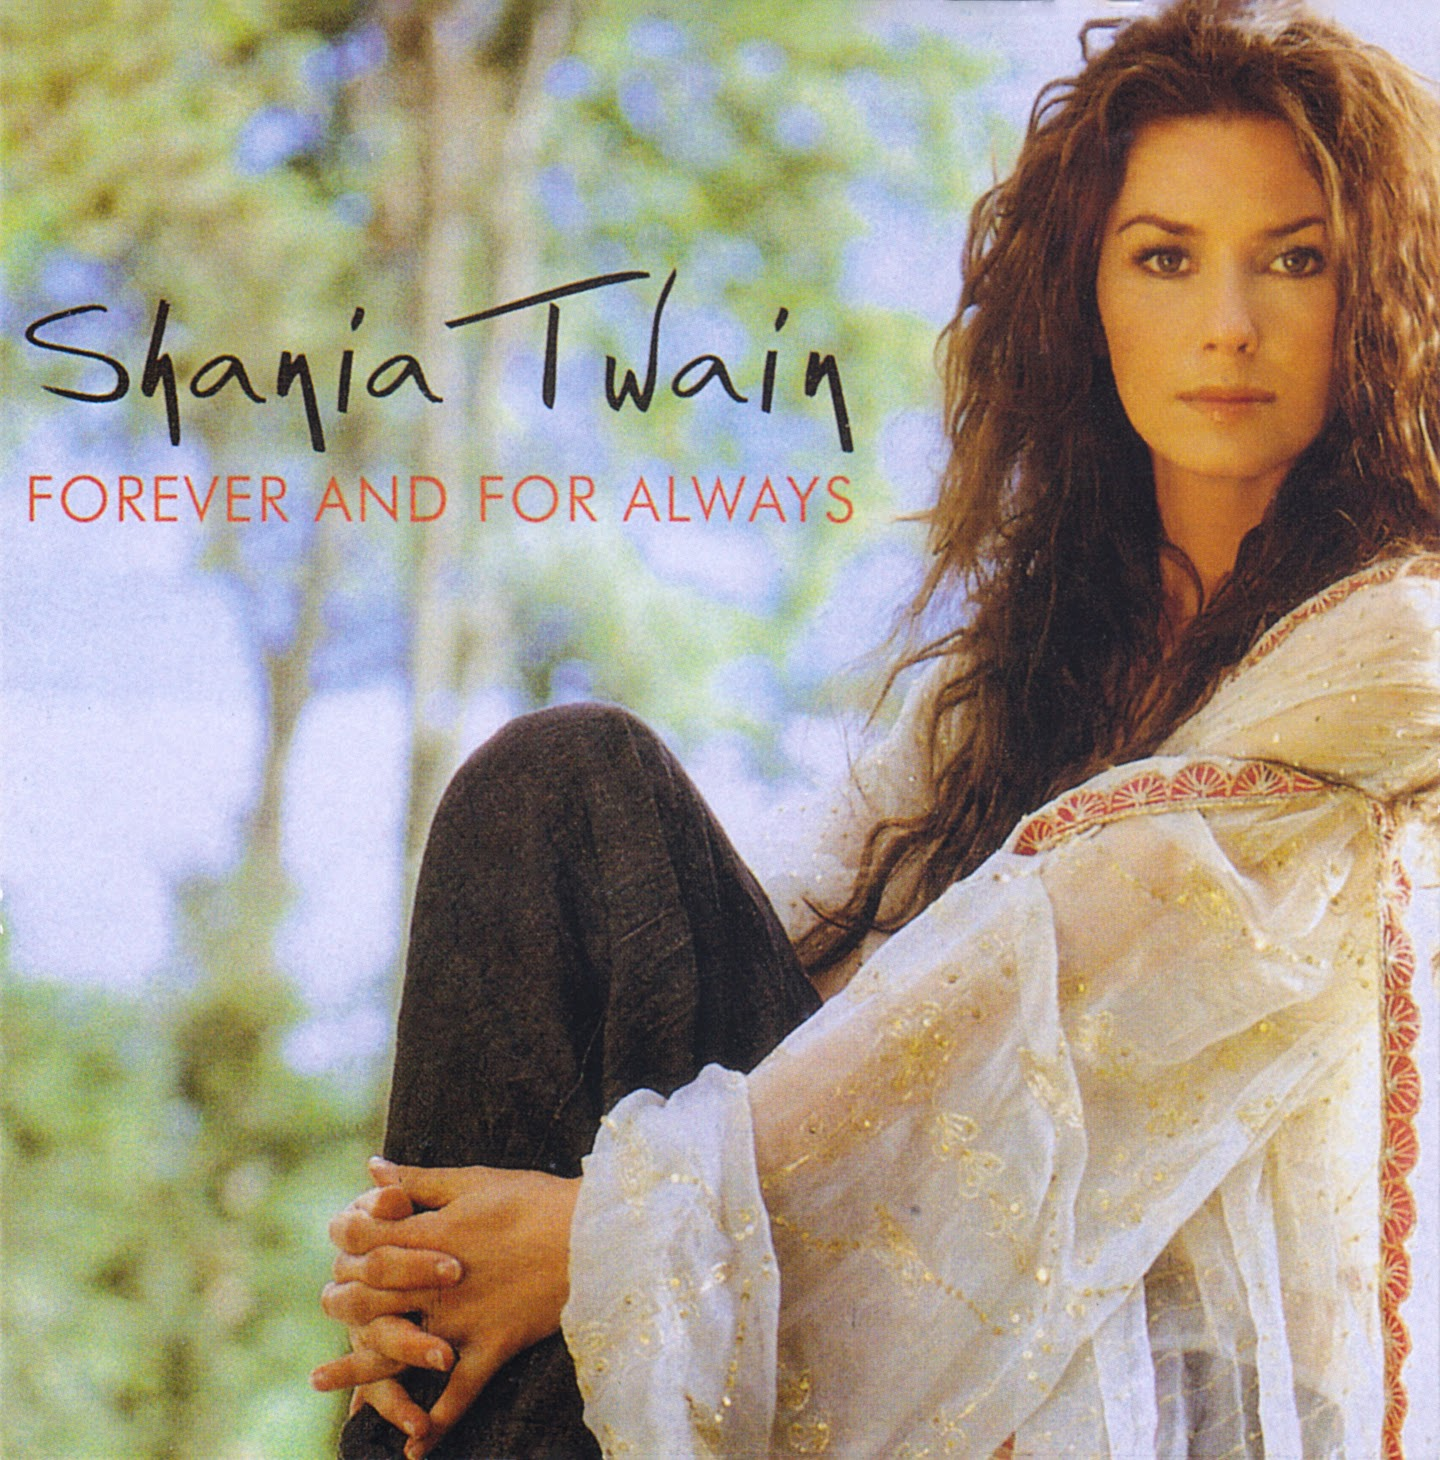 twain jewish singles Shania twain's smash empowerment song has been arranged by roger emerson for ssa choir and piano accompaniment co-written by shaina twain and rj lange, this country shuffle slice of pop is sure to have audiences enraptured.